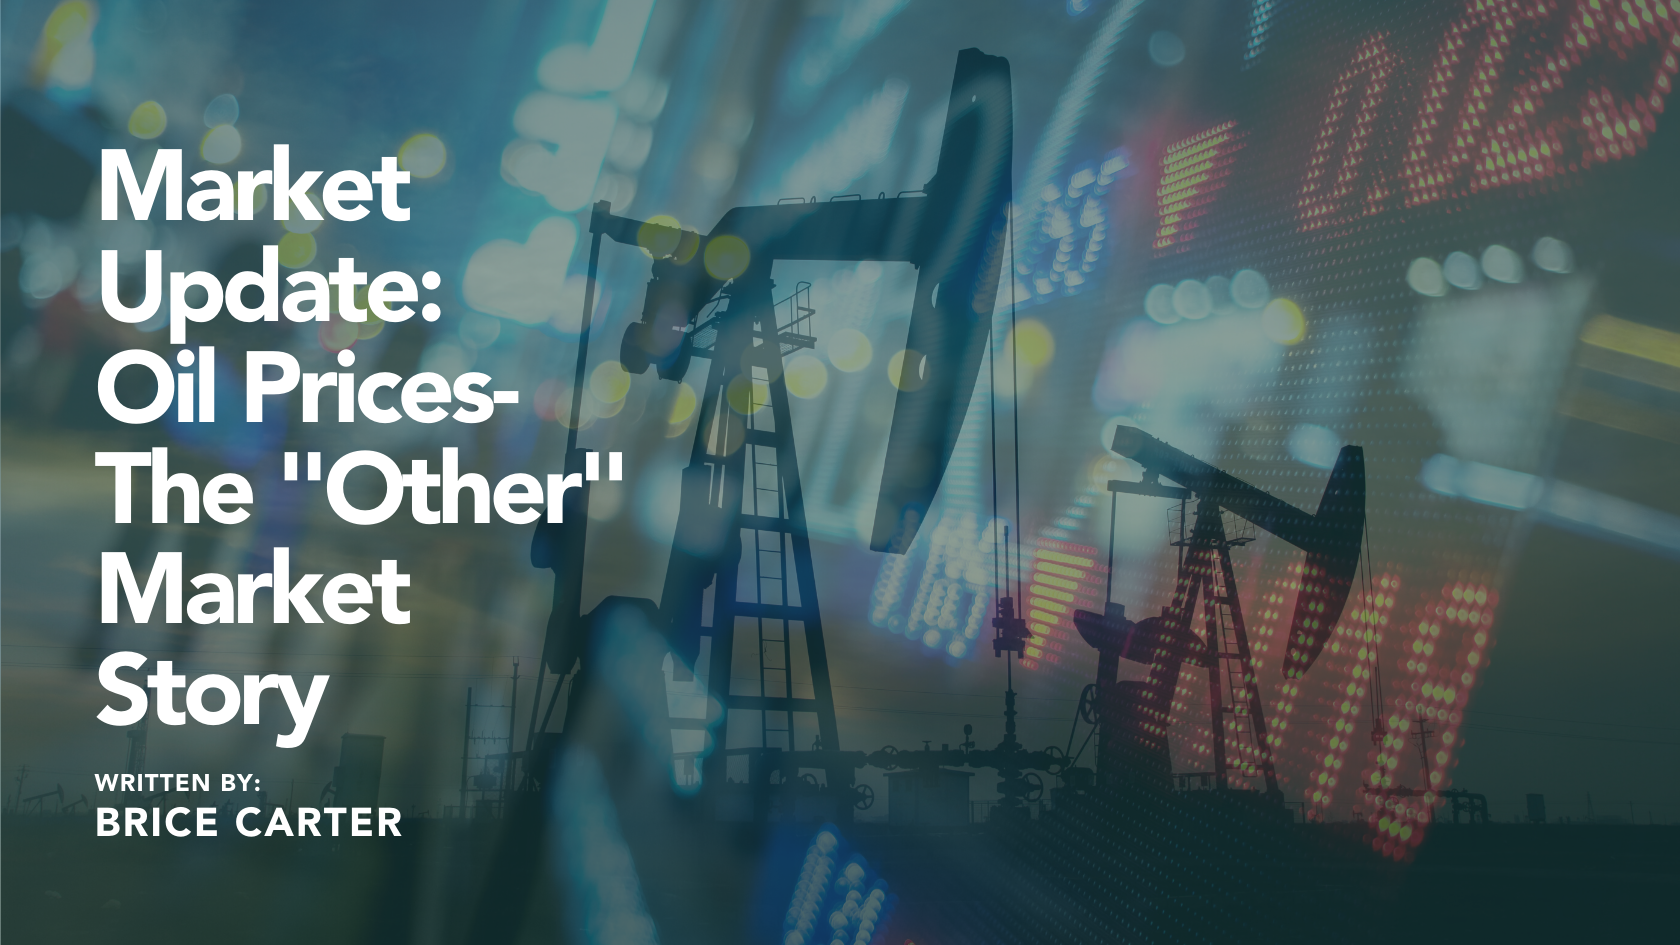 """Market Update: Oil Prices- The """"Other"""" Market Story Thumbnail"""